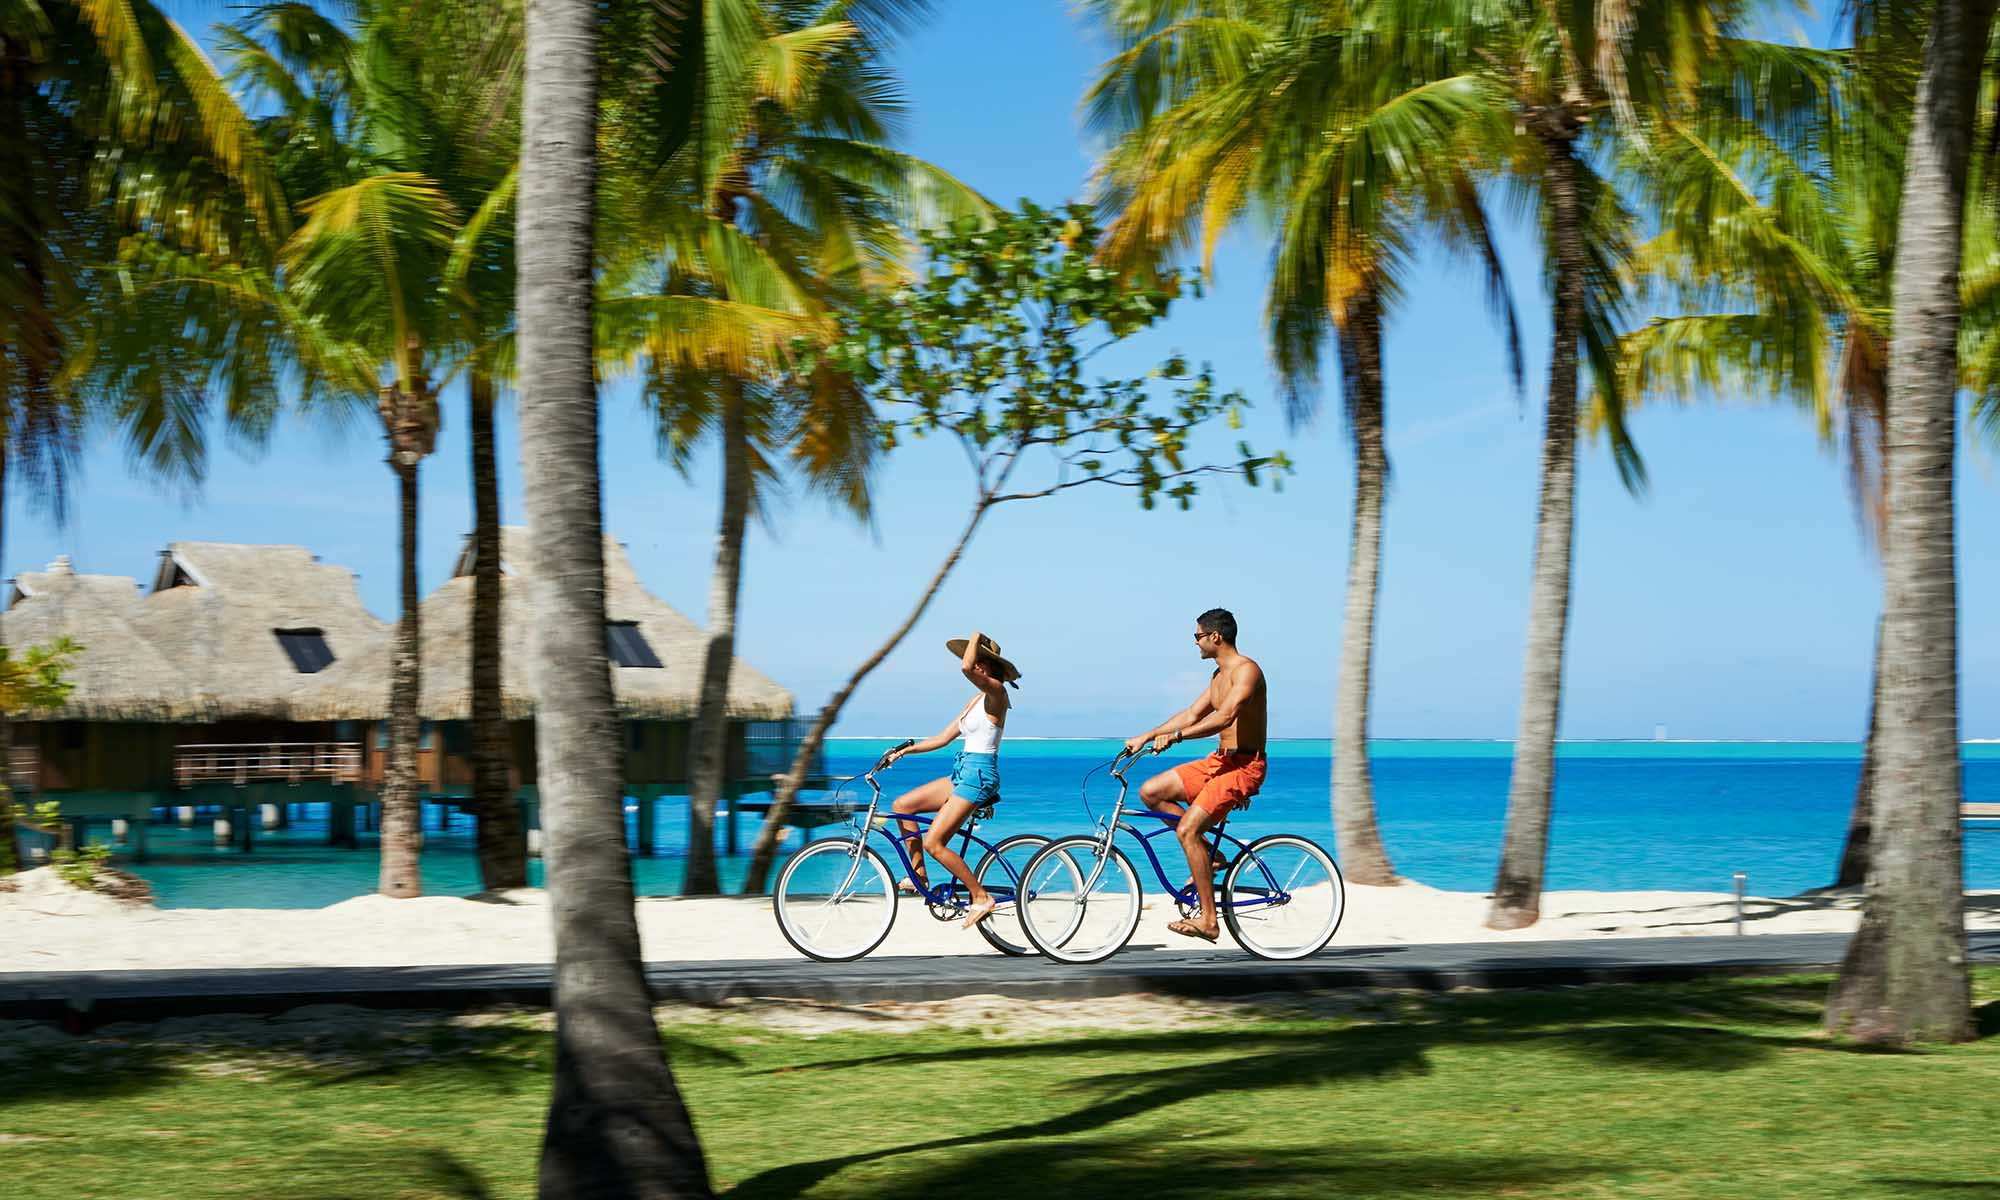 Riding your Complimentary Bicycle at the Conrad Bora Bora Nui